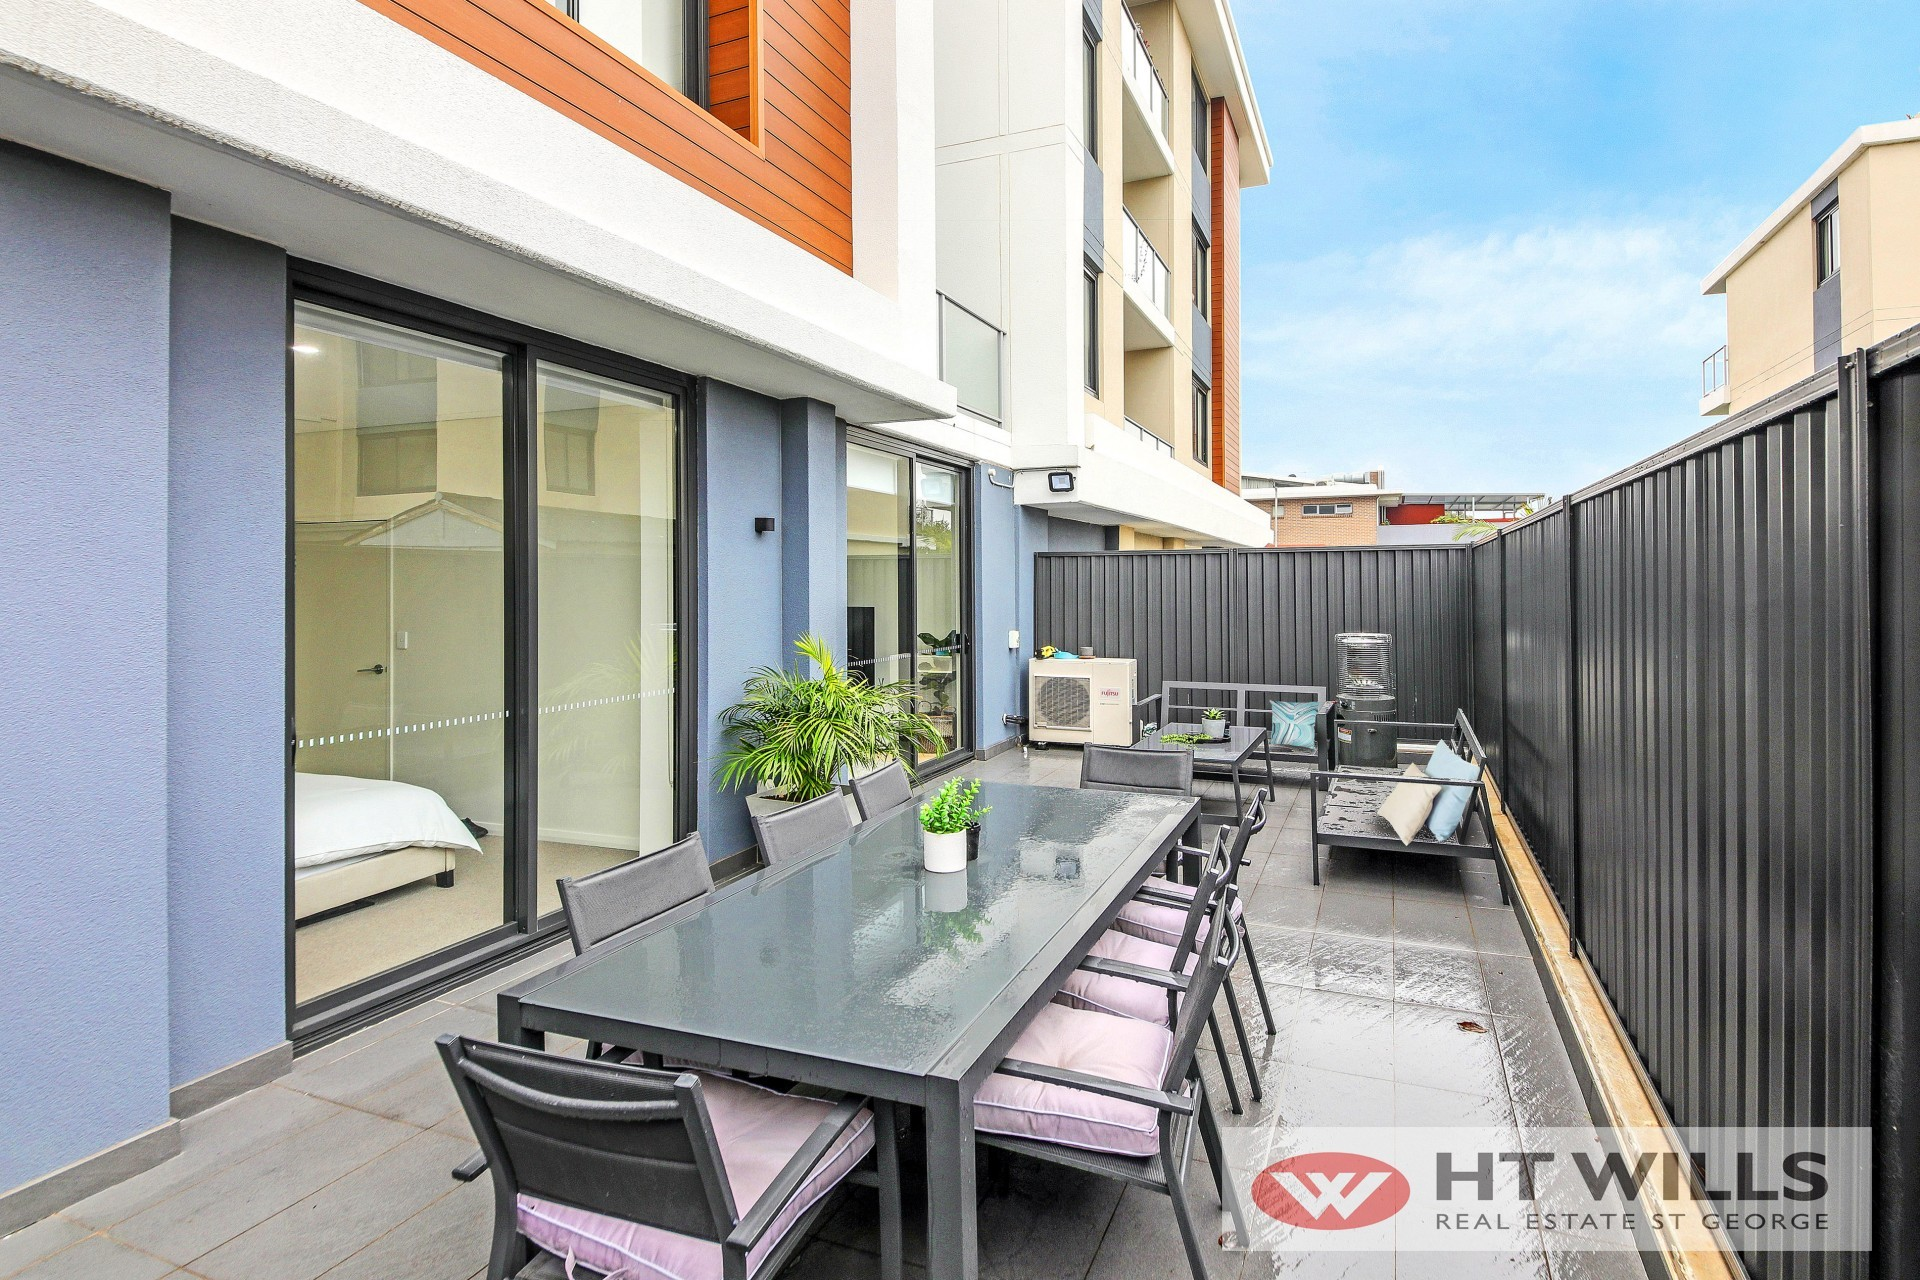 Villa style 2 bedroom plus study apartment located on the ground floor